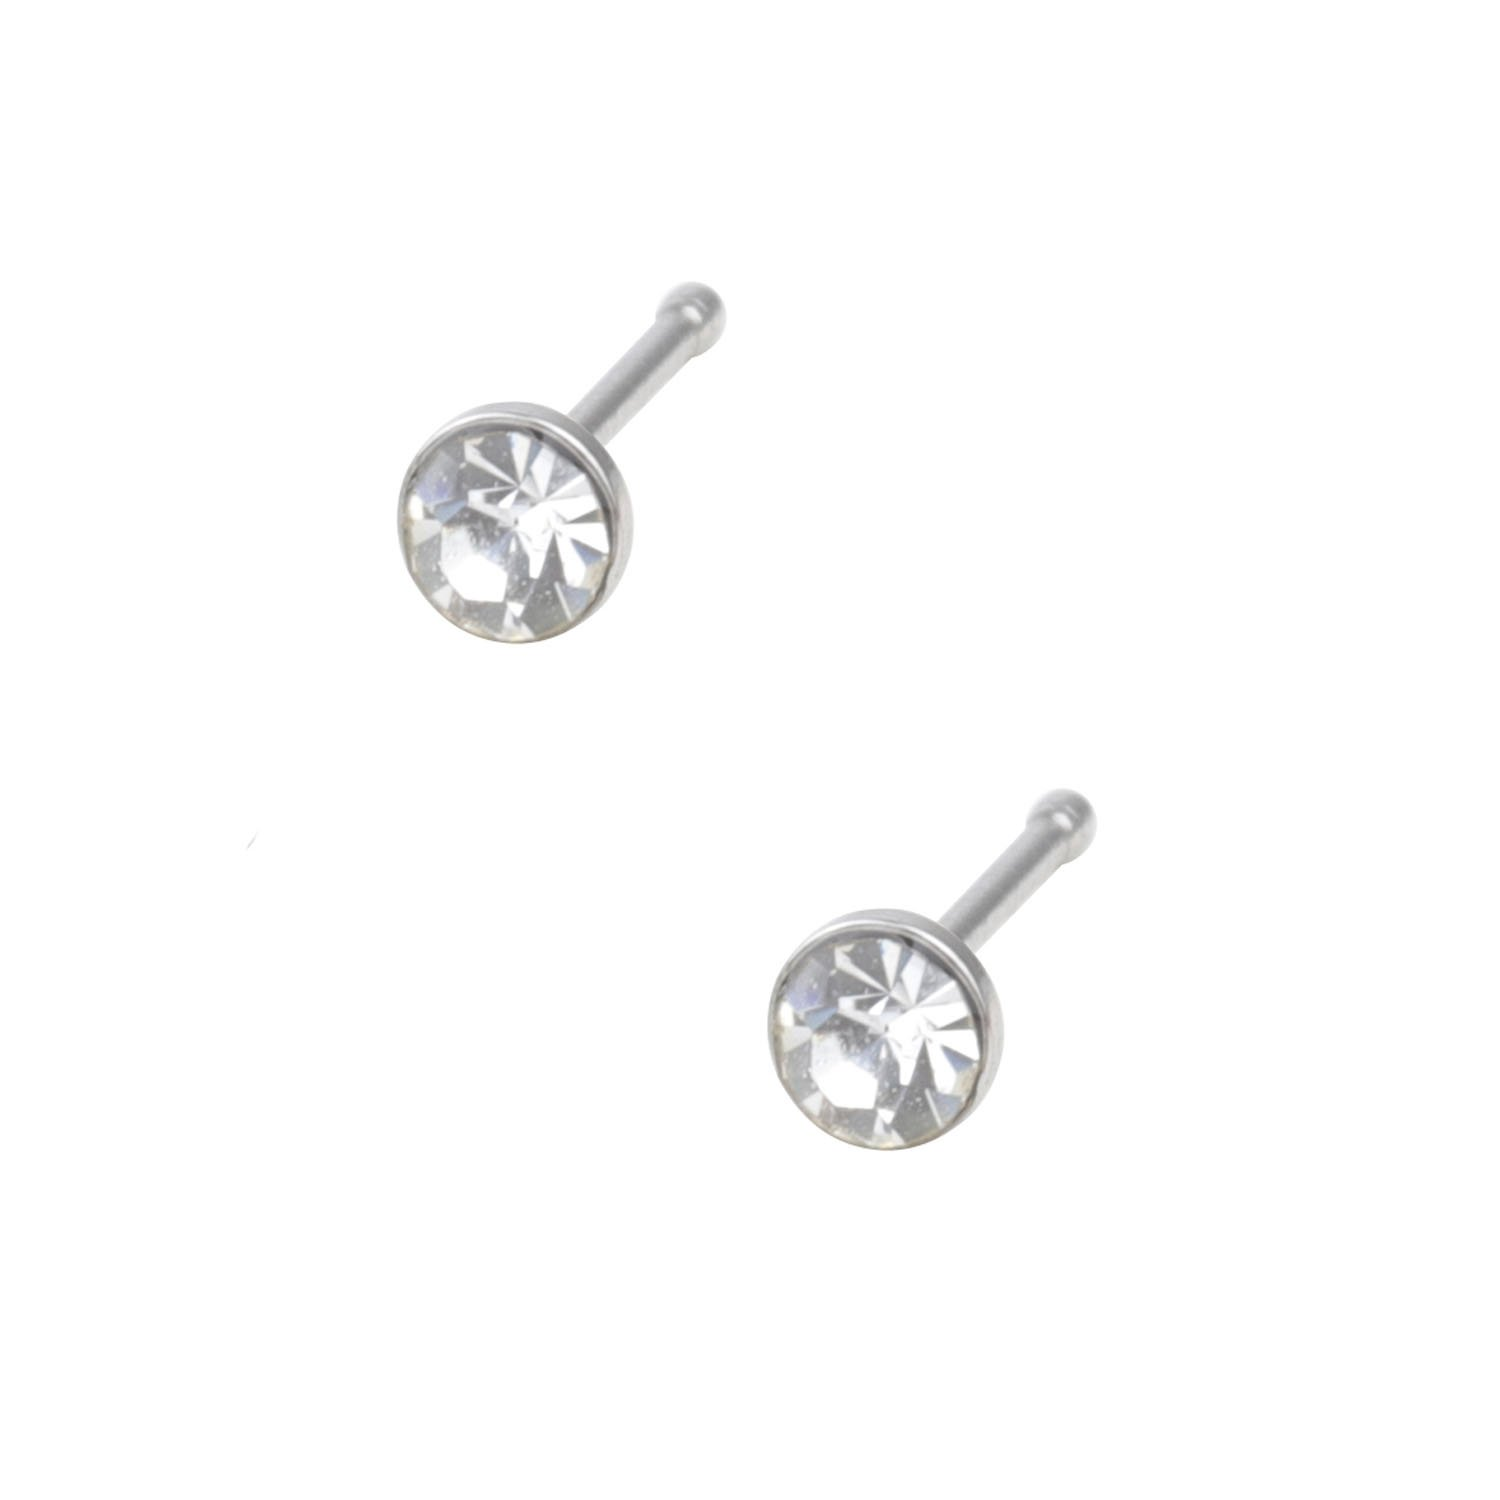 Ruby 20G Straight Nose Bone Studs Rings Pins Mixed Color Stainless Steel Rhinestone Piercing Nose Studs Rings Body Piercing 1.5mm